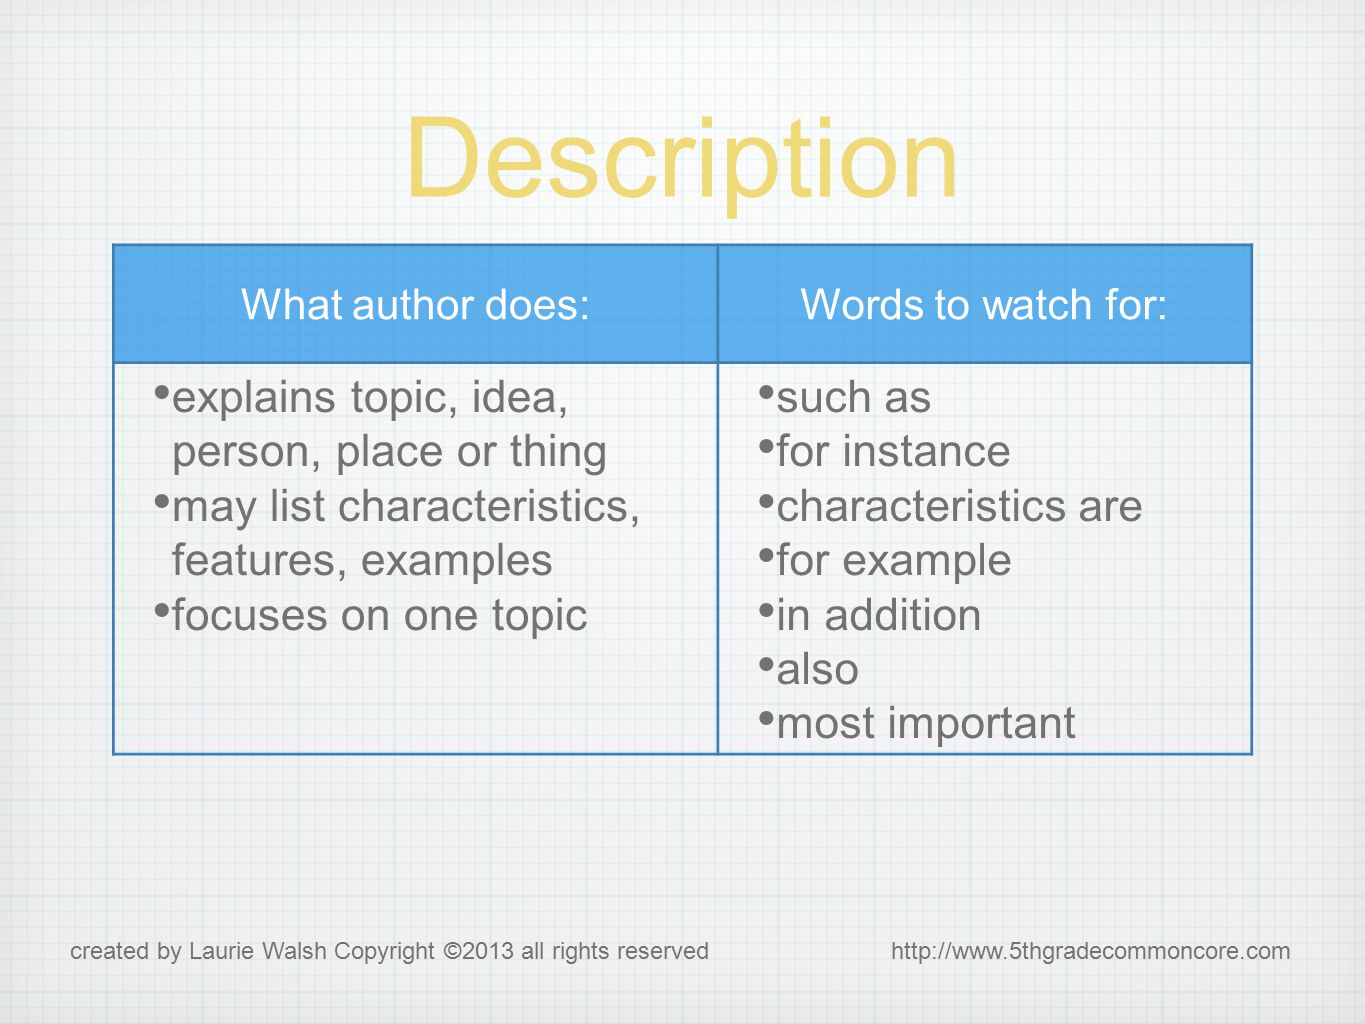 Description What author does:Words to watch for: explains topic, idea, person, place or thing may list characteristics, features, examples focuses on one topic such as for instance characteristics are for example in addition also most important created by Laurie Walsh Copyright ©2013 all rights reserved http://www.5thgradecommoncore.com